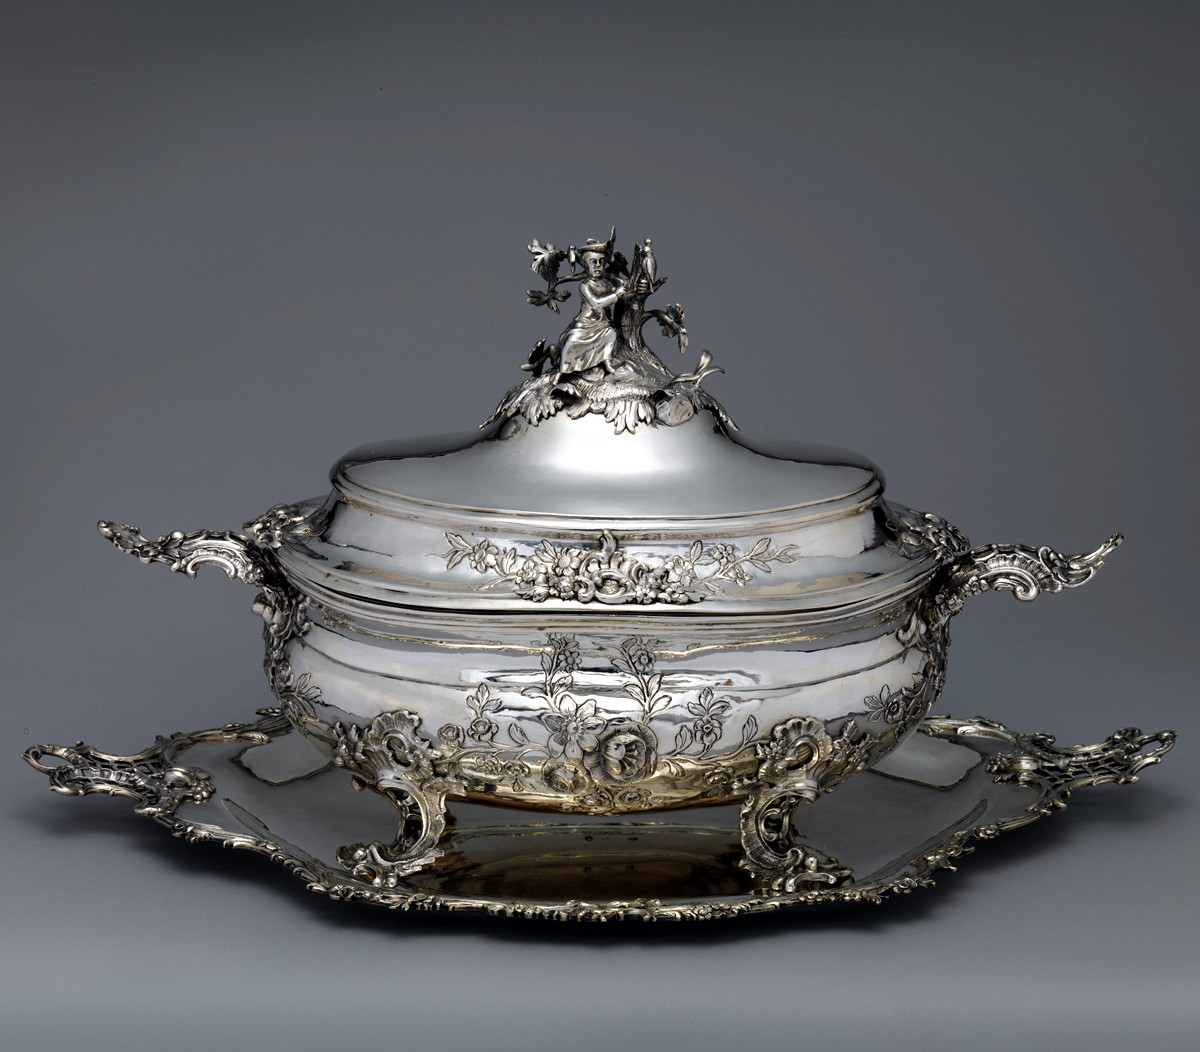 1771 Tureen and stand. Silver, silver gilt. German, Augsburg. metmuseum